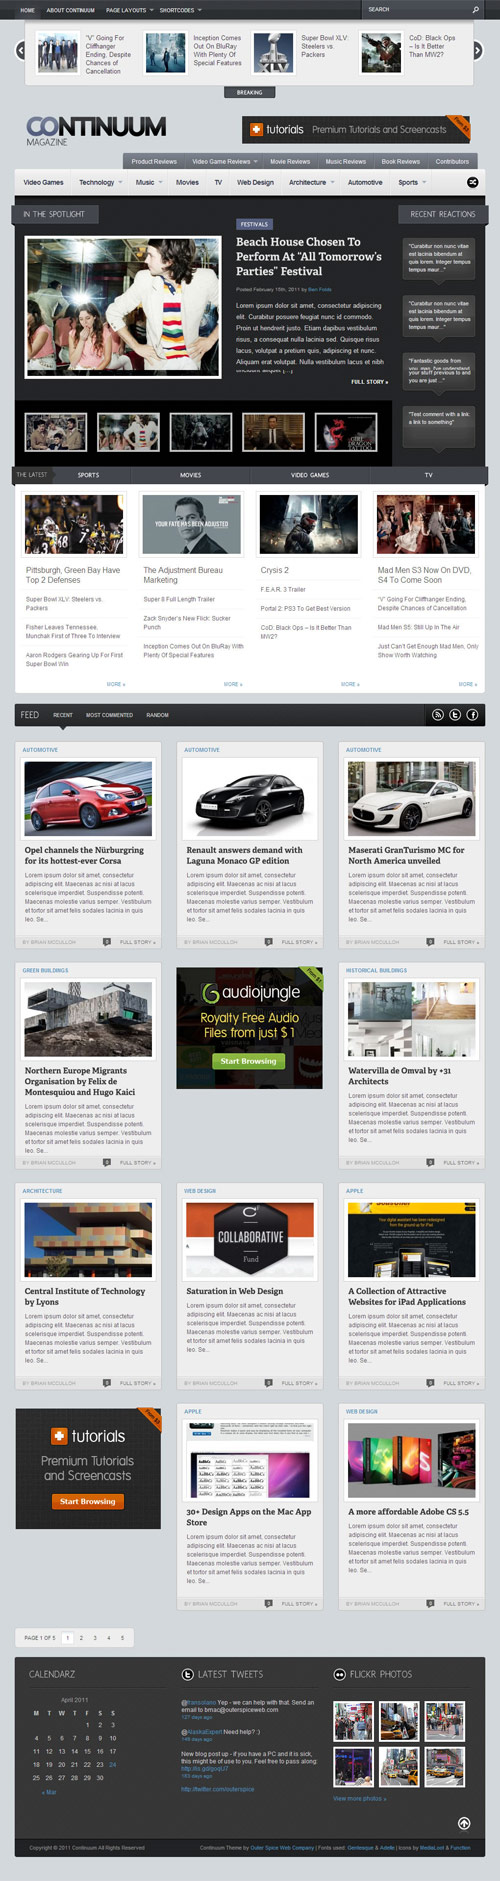 Continuum - Magazine WordPress Theme - great magazine wordpress themes